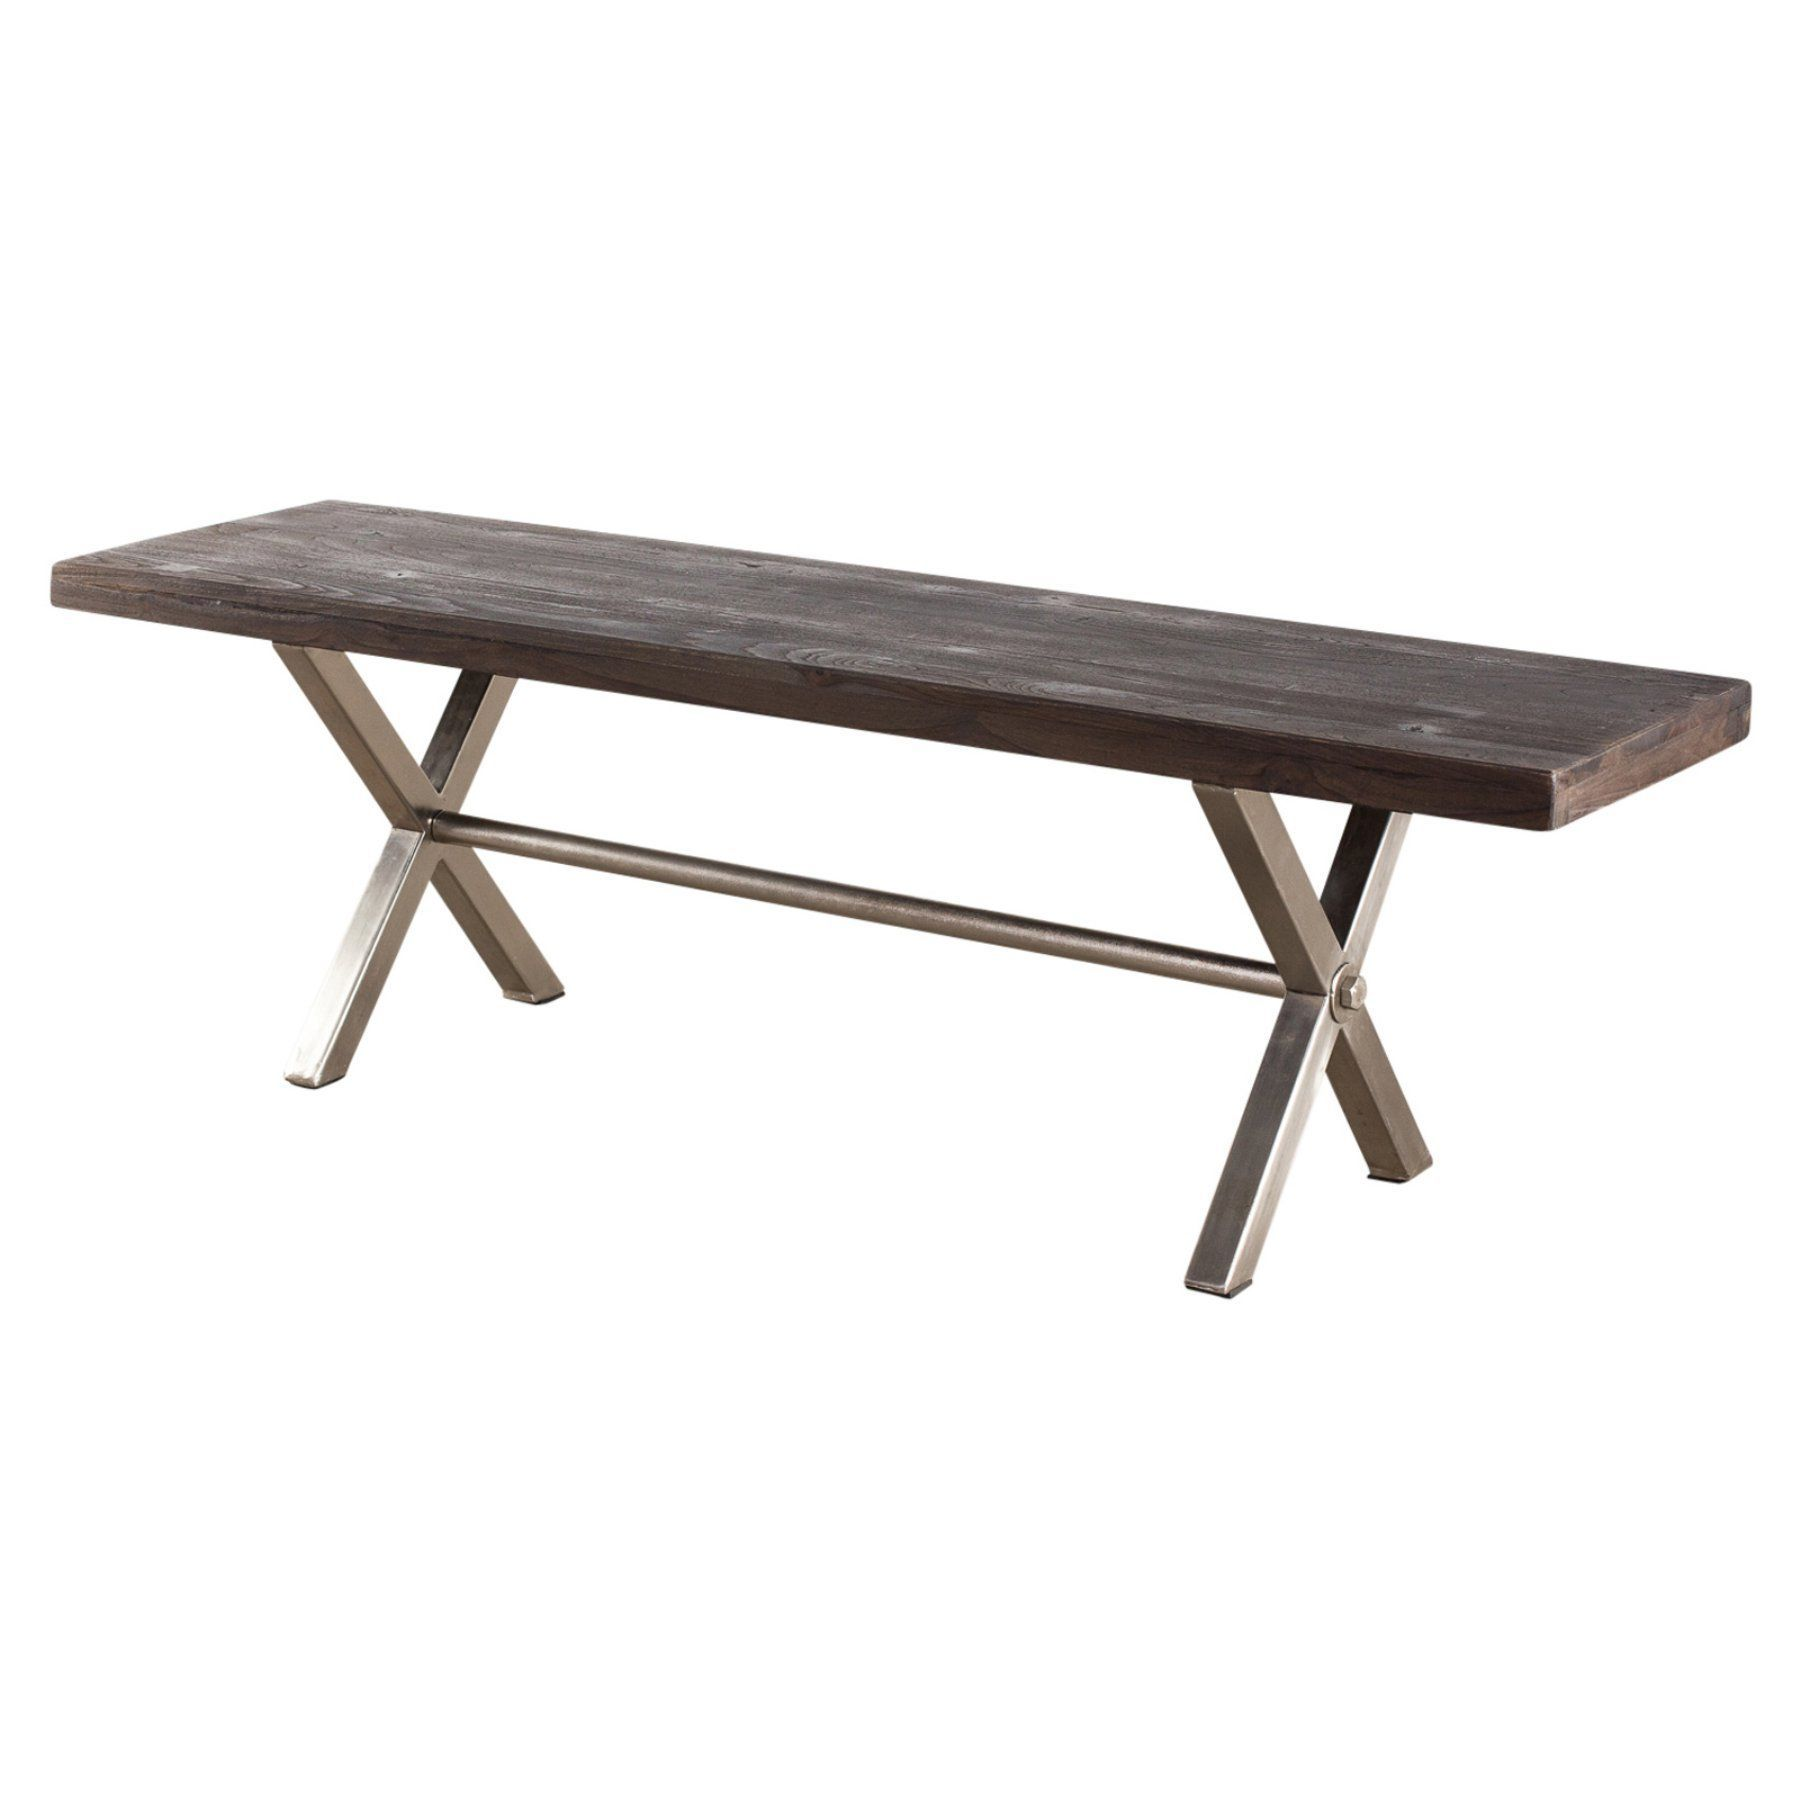 ... Industrial Style And Smart Extra Seating With This Coorg Indoor Bench    Natural . It Has A Wooden Plank Top And Brushed Metal X.